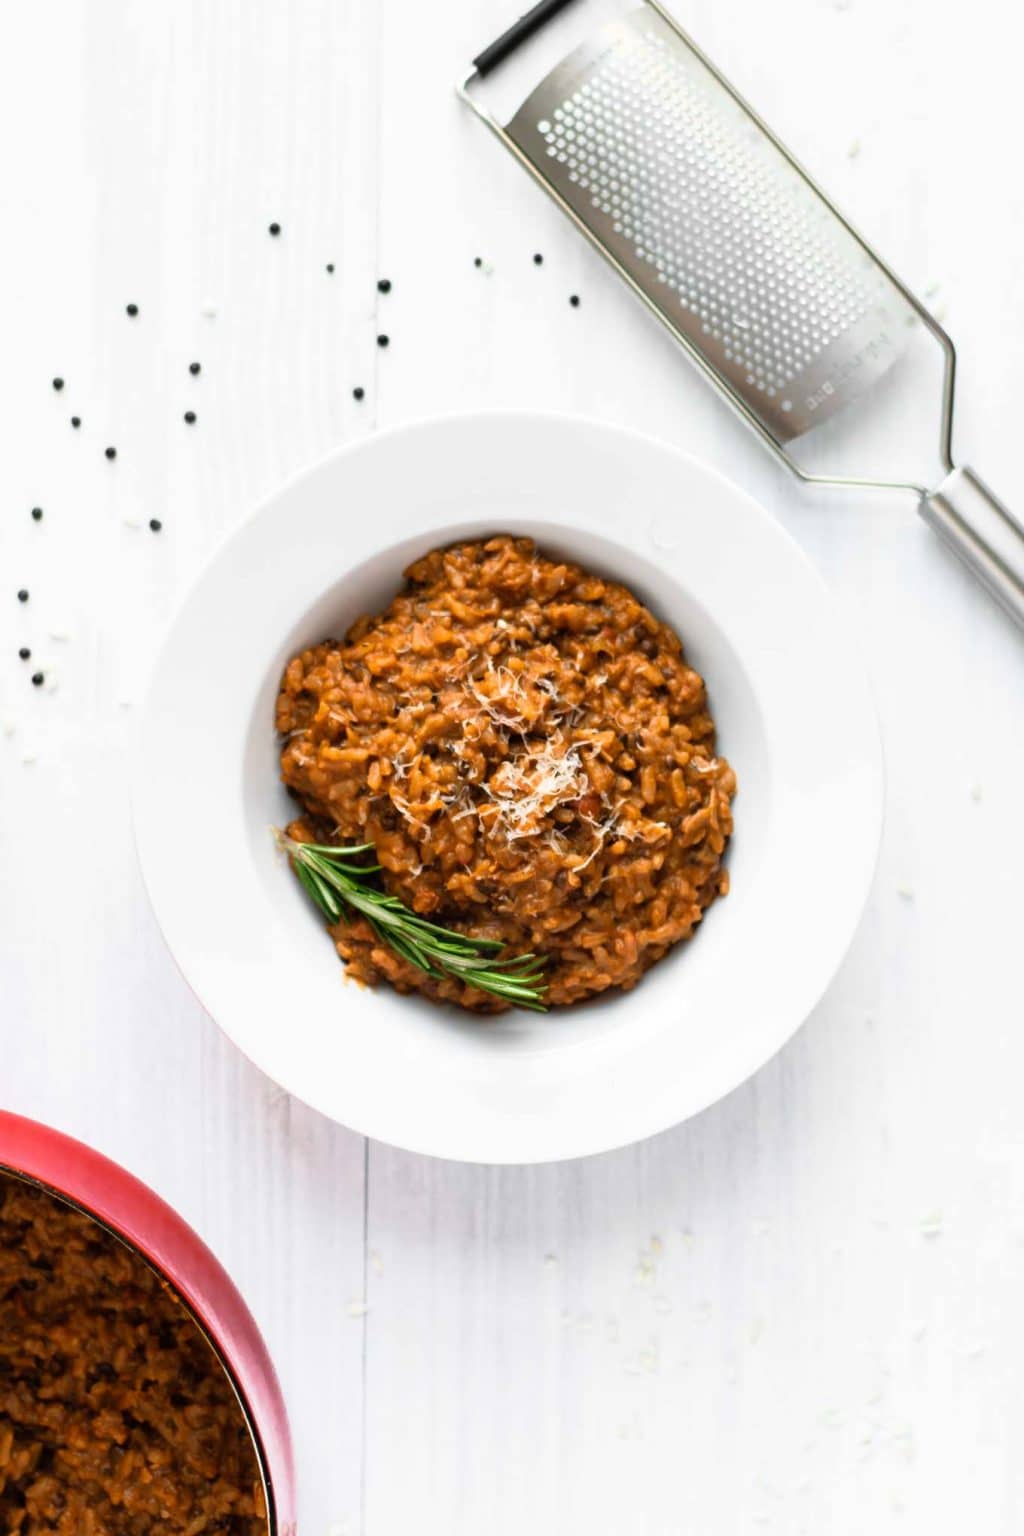 vegan risotto bolognese served with vegan parmesan